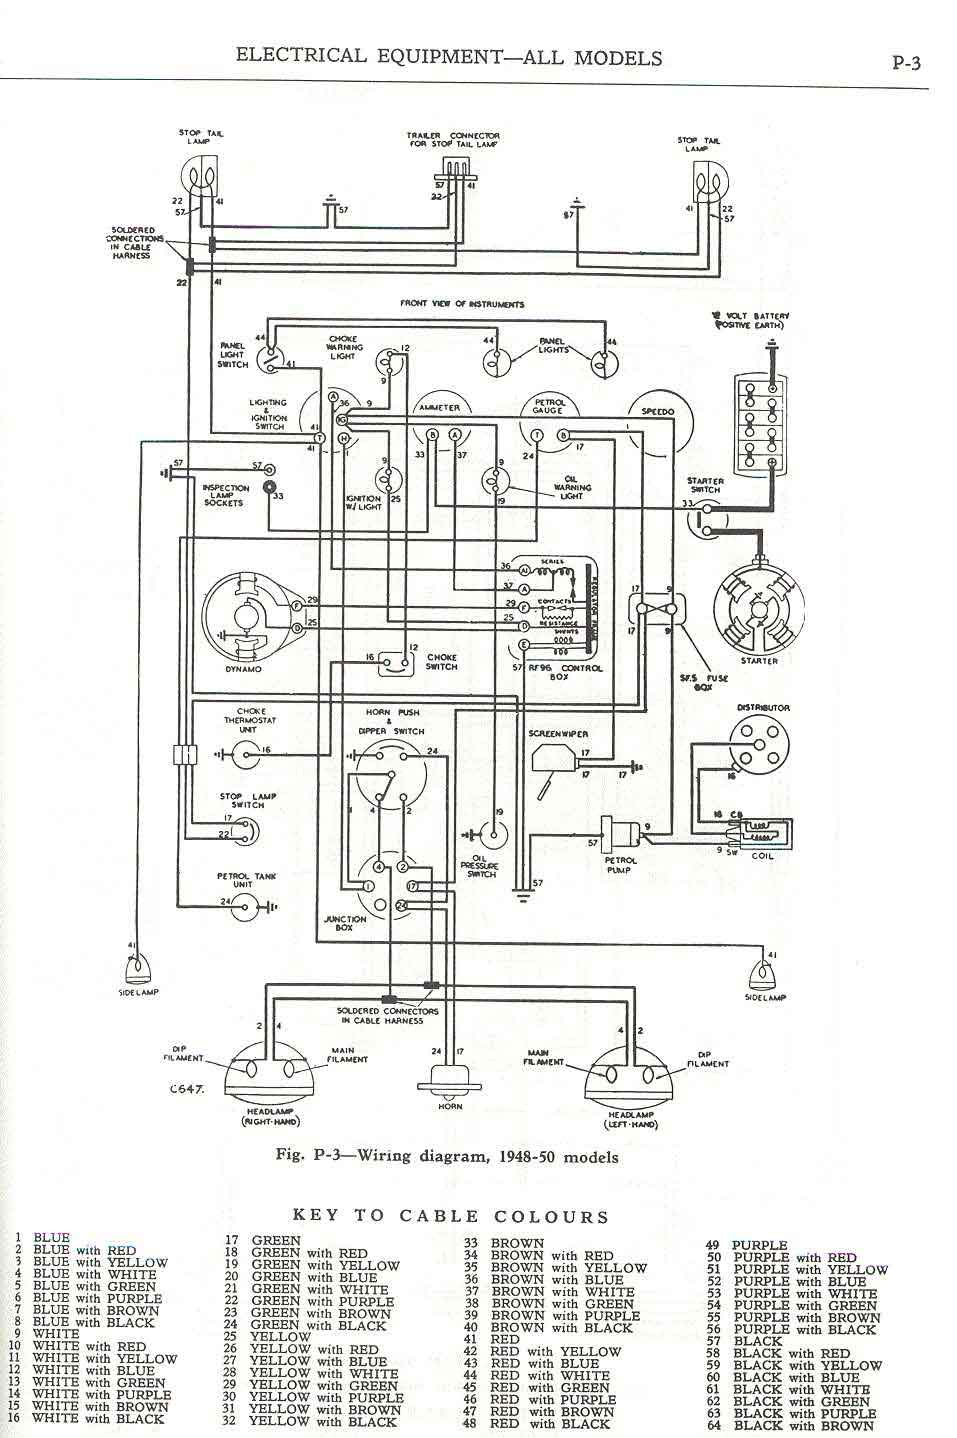 P3 land rover faq repair & maintenance series electrical rover 45 wiring diagram at reclaimingppi.co